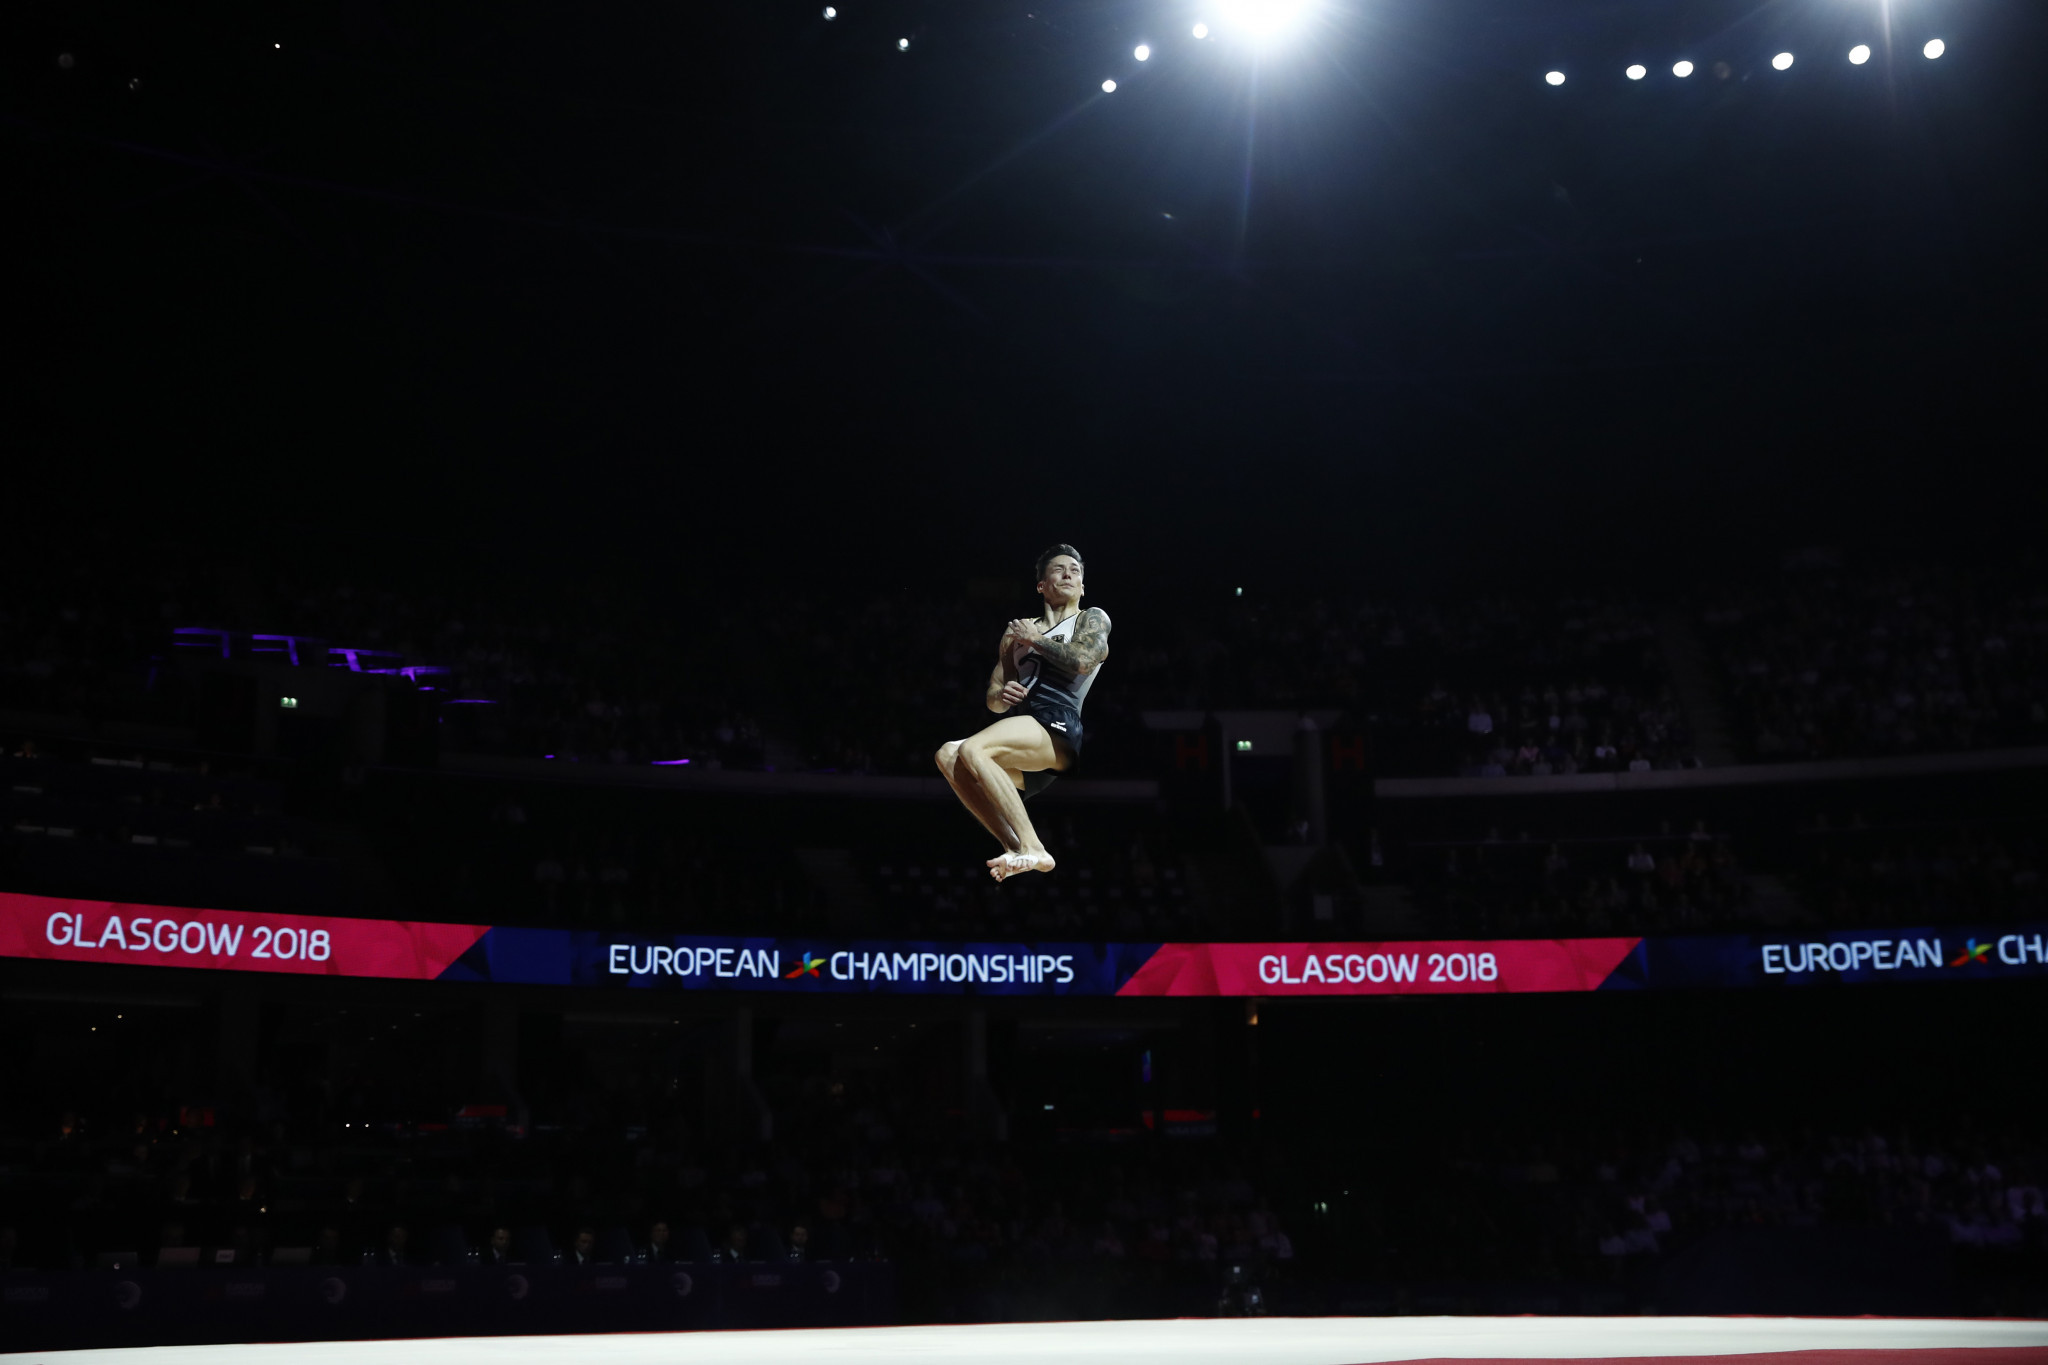 Munich 2022 will be the second edition of the European Championships following their debut in Glasgow and Berlin in 2018 ©Getty Images